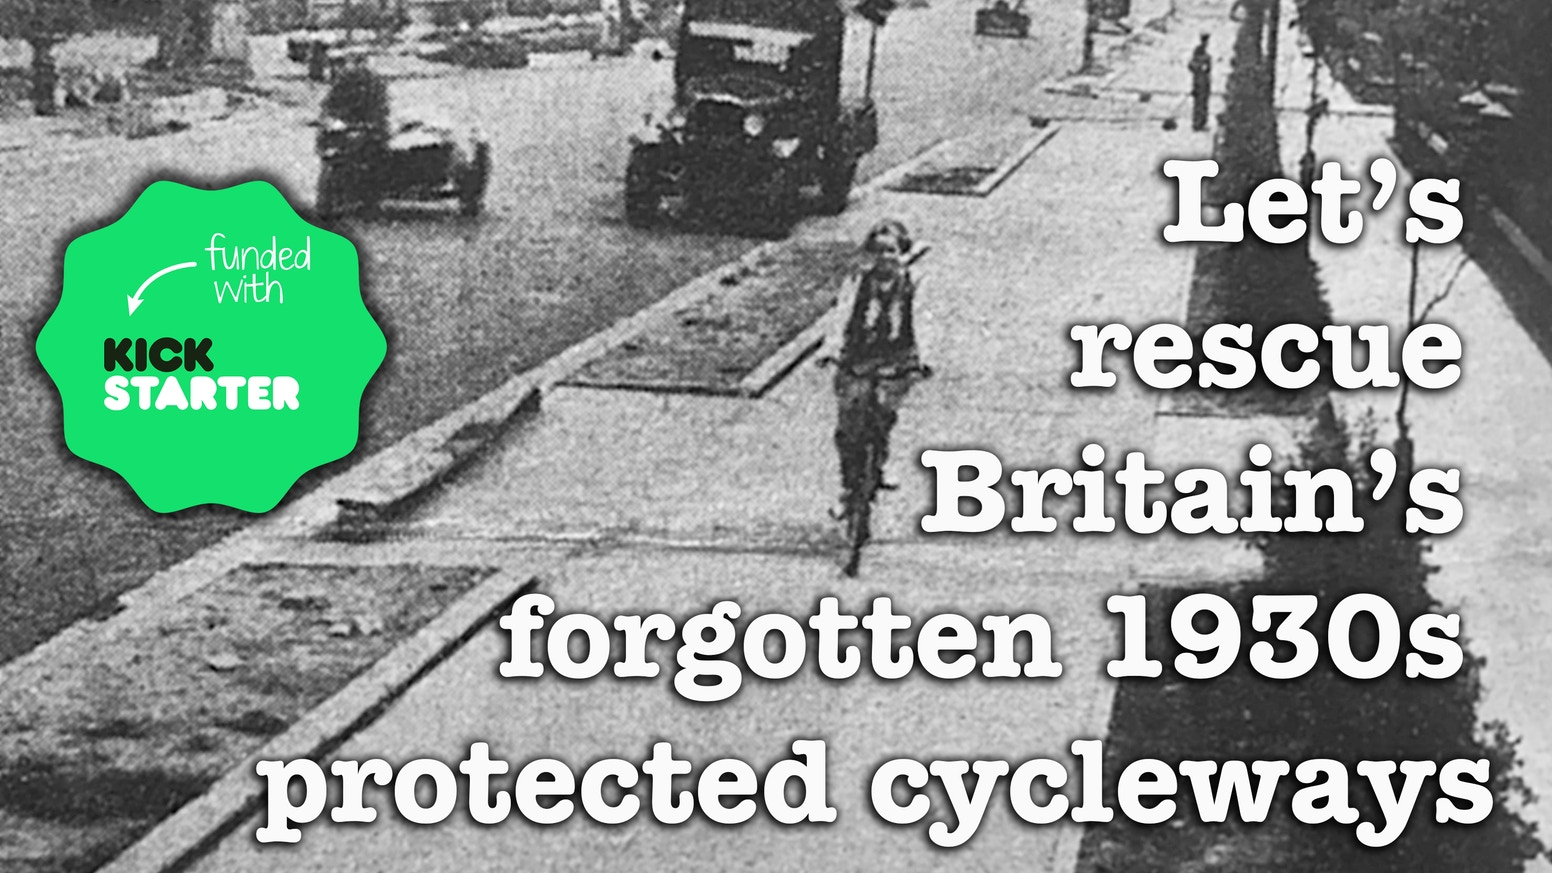 We should revive Britain's long-lost 1930s cycleways (there were 300+ miles of them). Many were buried, some are hidden in plain sight.